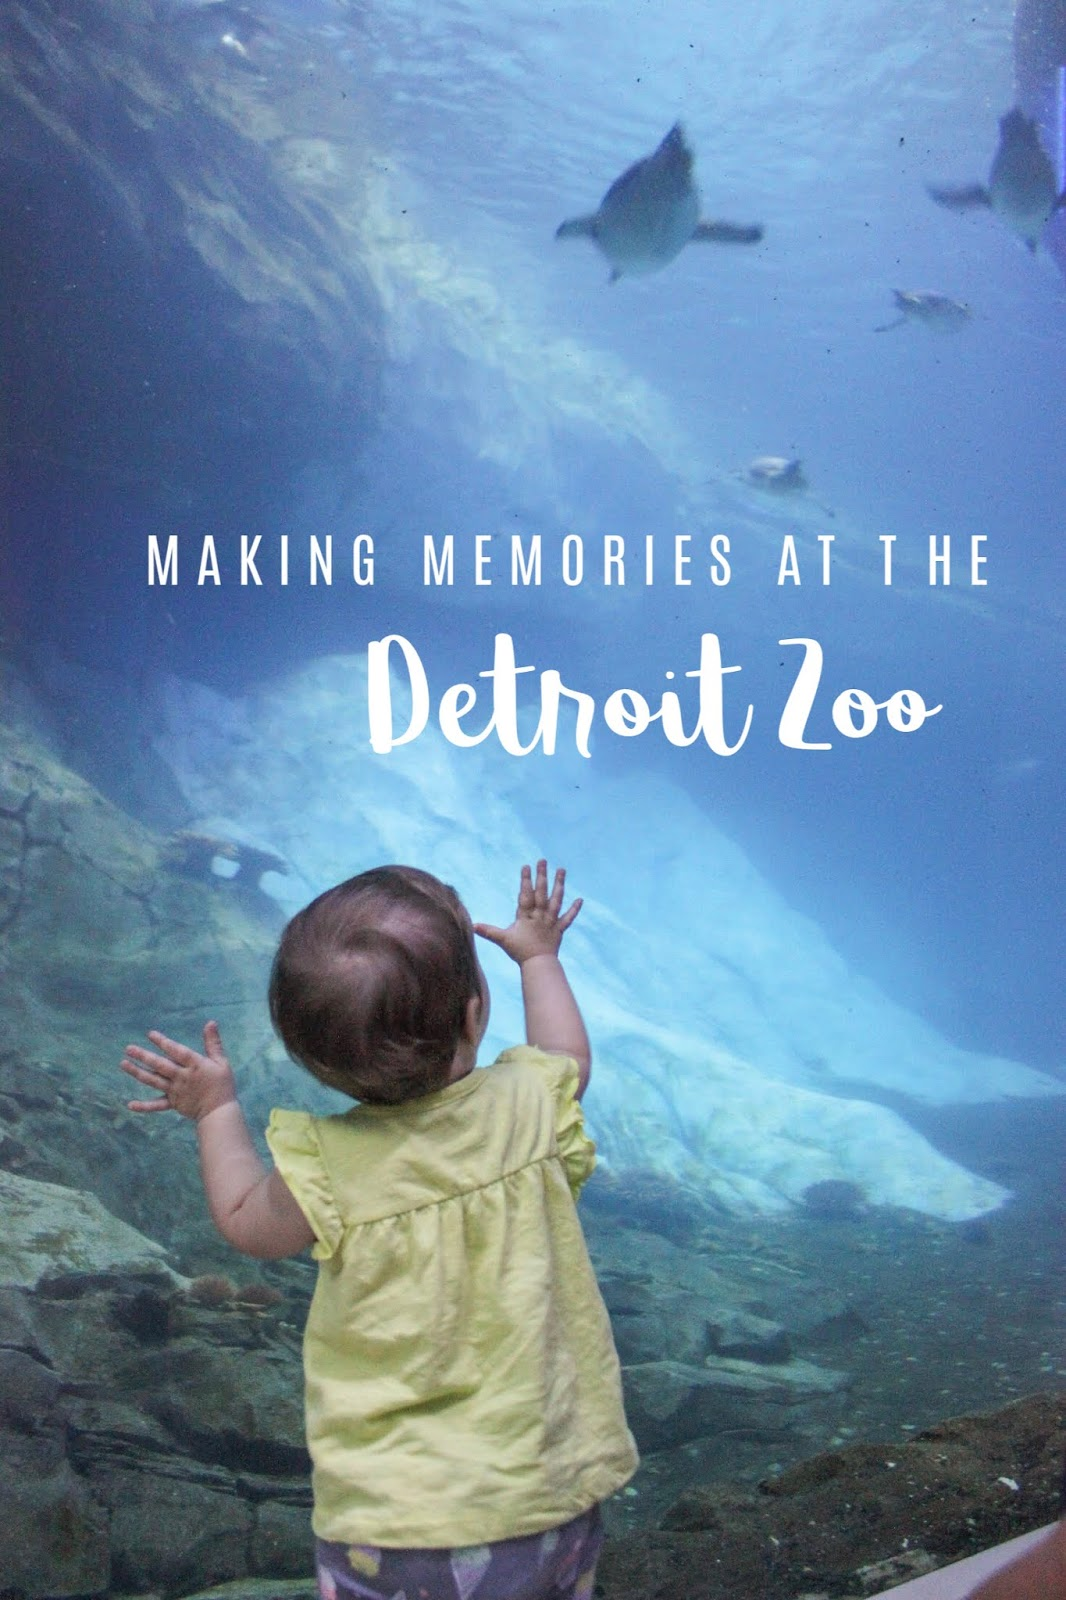 family-friendly fun at the Detroit Zoo, Michigan